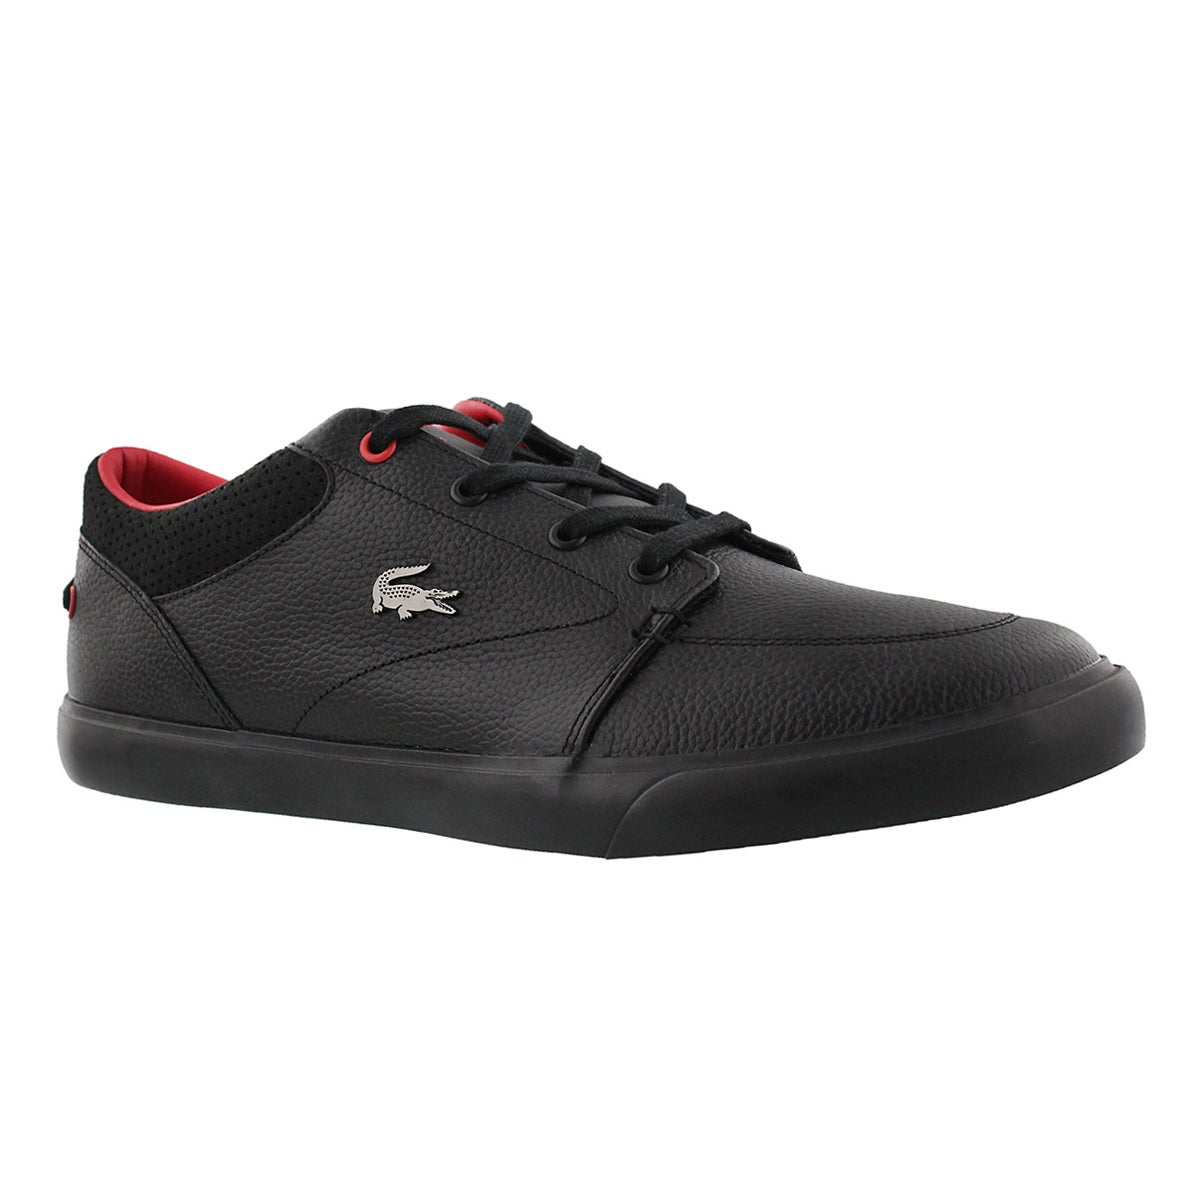 lacoste mens bayliss vulc 317 blackred snea softmoccom